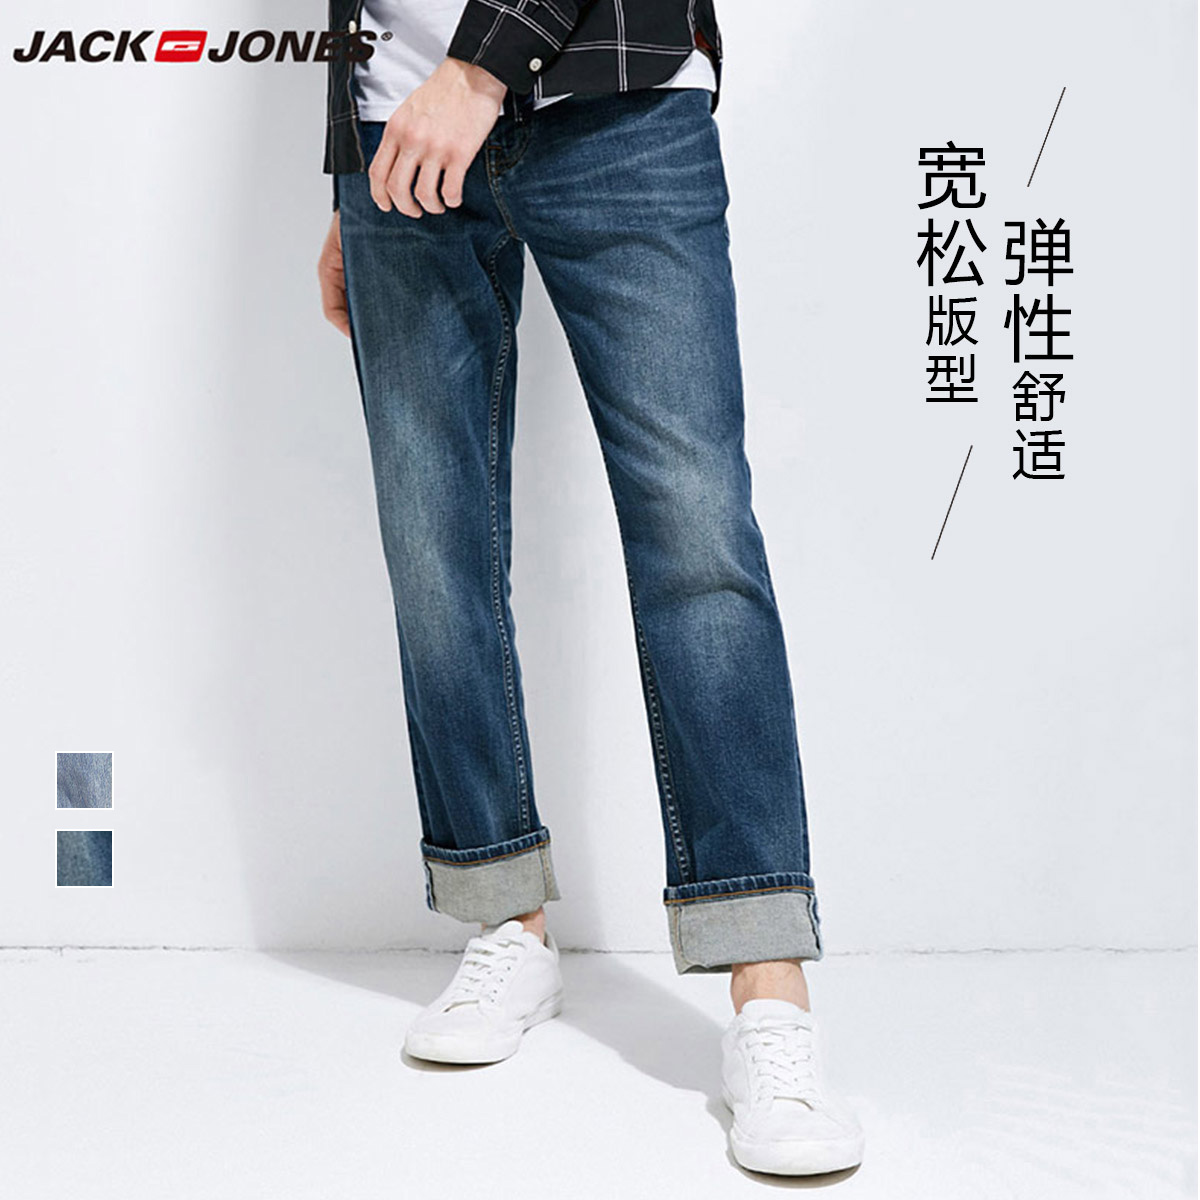 Jack Jones, Jack Jones, spring / summer trend, all-around fashion, elastic loose large comfortable straight jeans